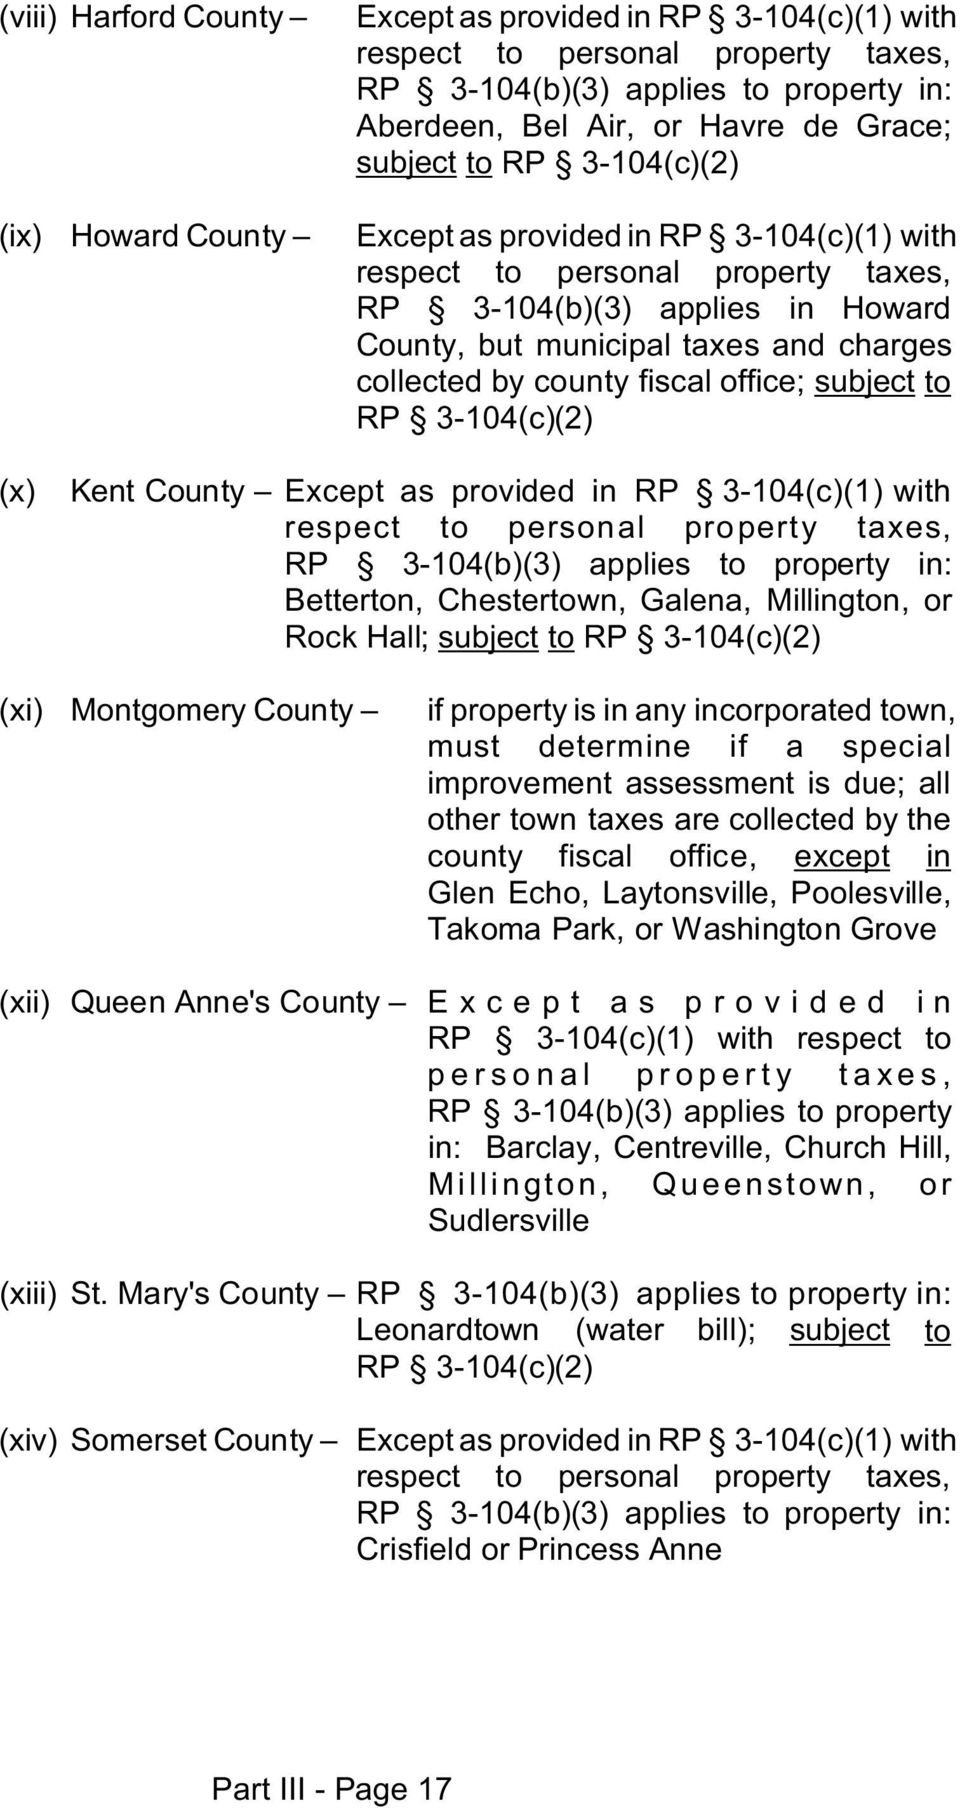 county fiscal office; subject to RP 3-104(c)(2) (x) Kent County Except as provided in RP 3-104(c)(1) with respect to personal property taxes, RP 3-104(b)(3) applies to property in: Betterton,